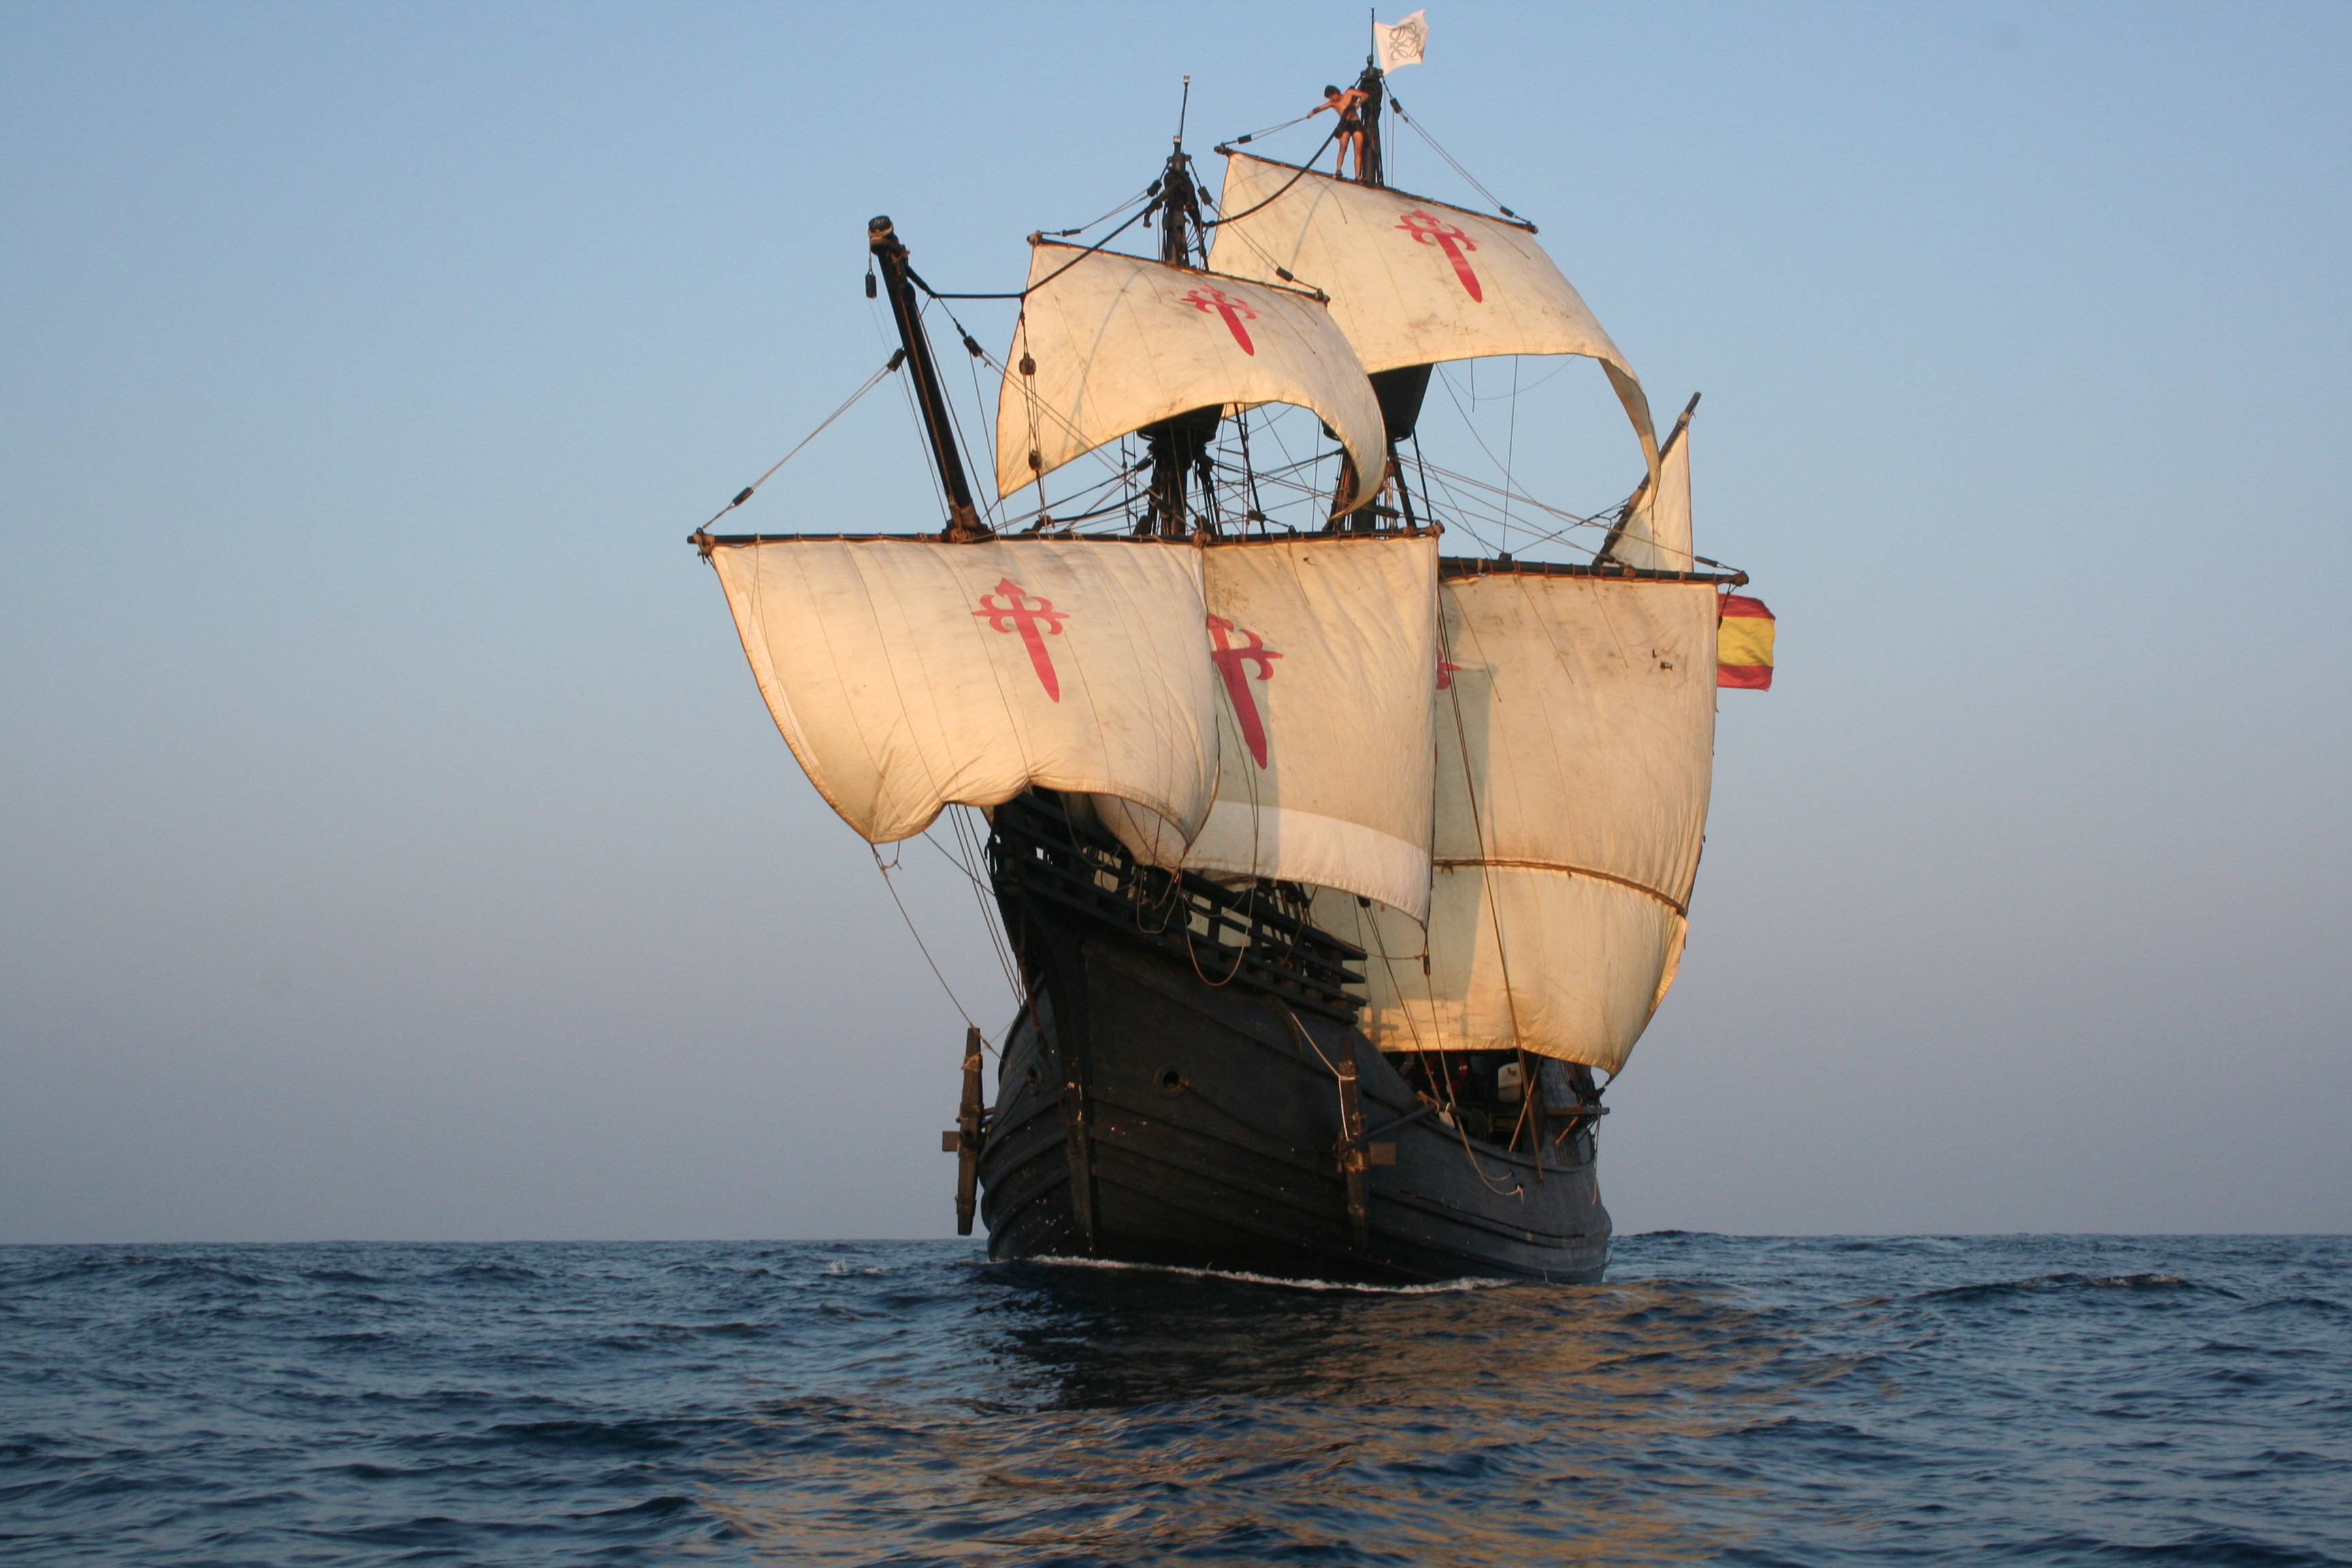 Magellan's replica tall ship Nao Victoria to visit UK - Classic Boat ...